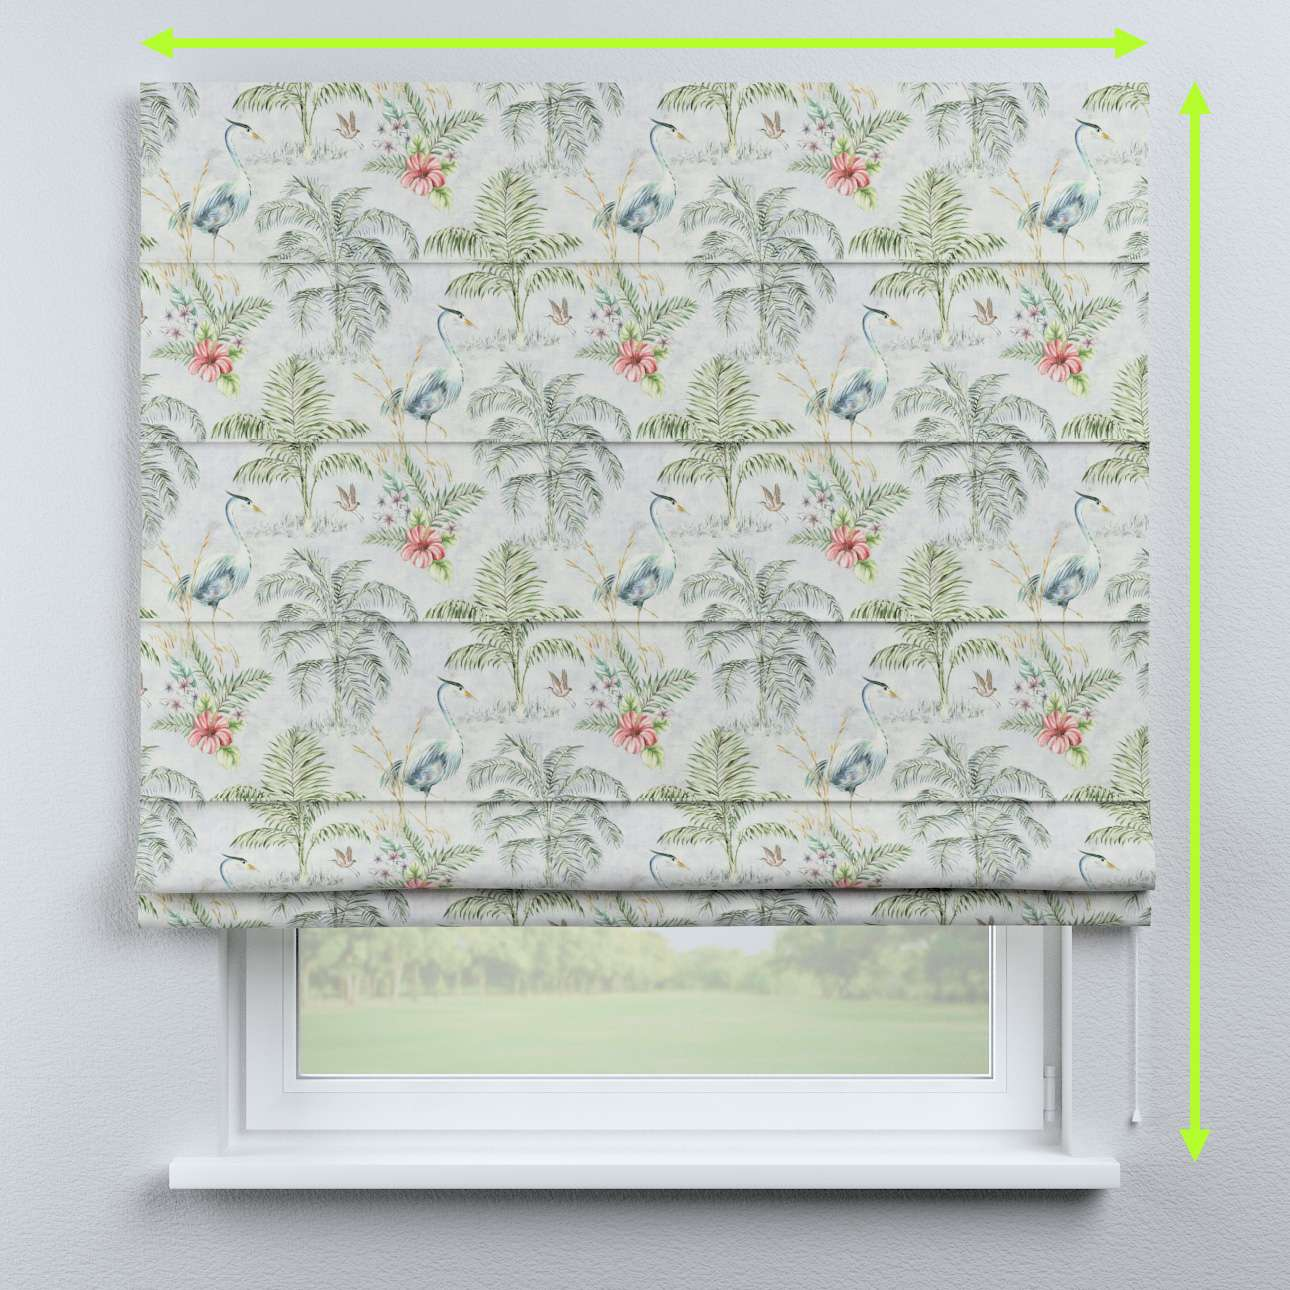 Capri roman blind in collection Tropical Island, fabric: 142-58